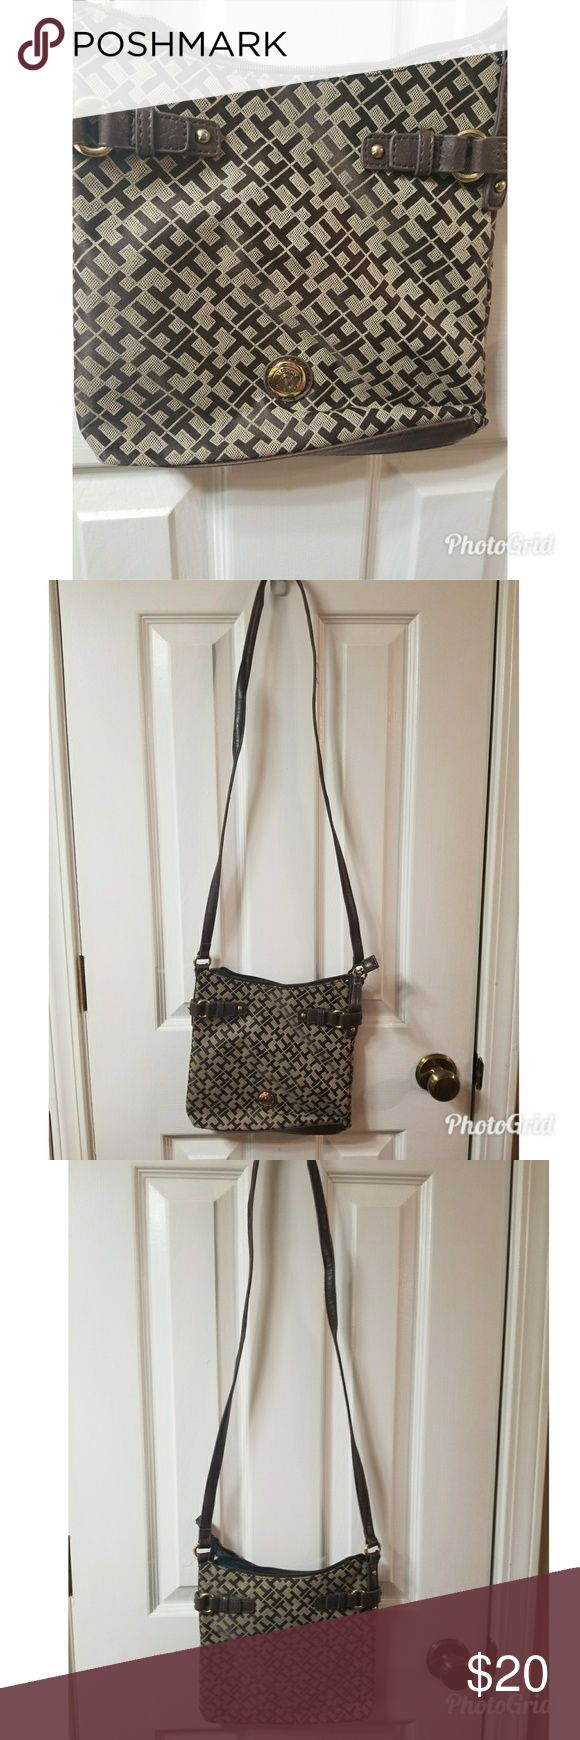 Over the Shoulder Purse Tommy Hilfiger Over the Shoulder Purse Used a handful of times but in great condition!  No wears or tears The inside of the purse is a little small but great for a small night out with friends or a short trip running errands Tommy Hilfiger Bags Shoulder Bags